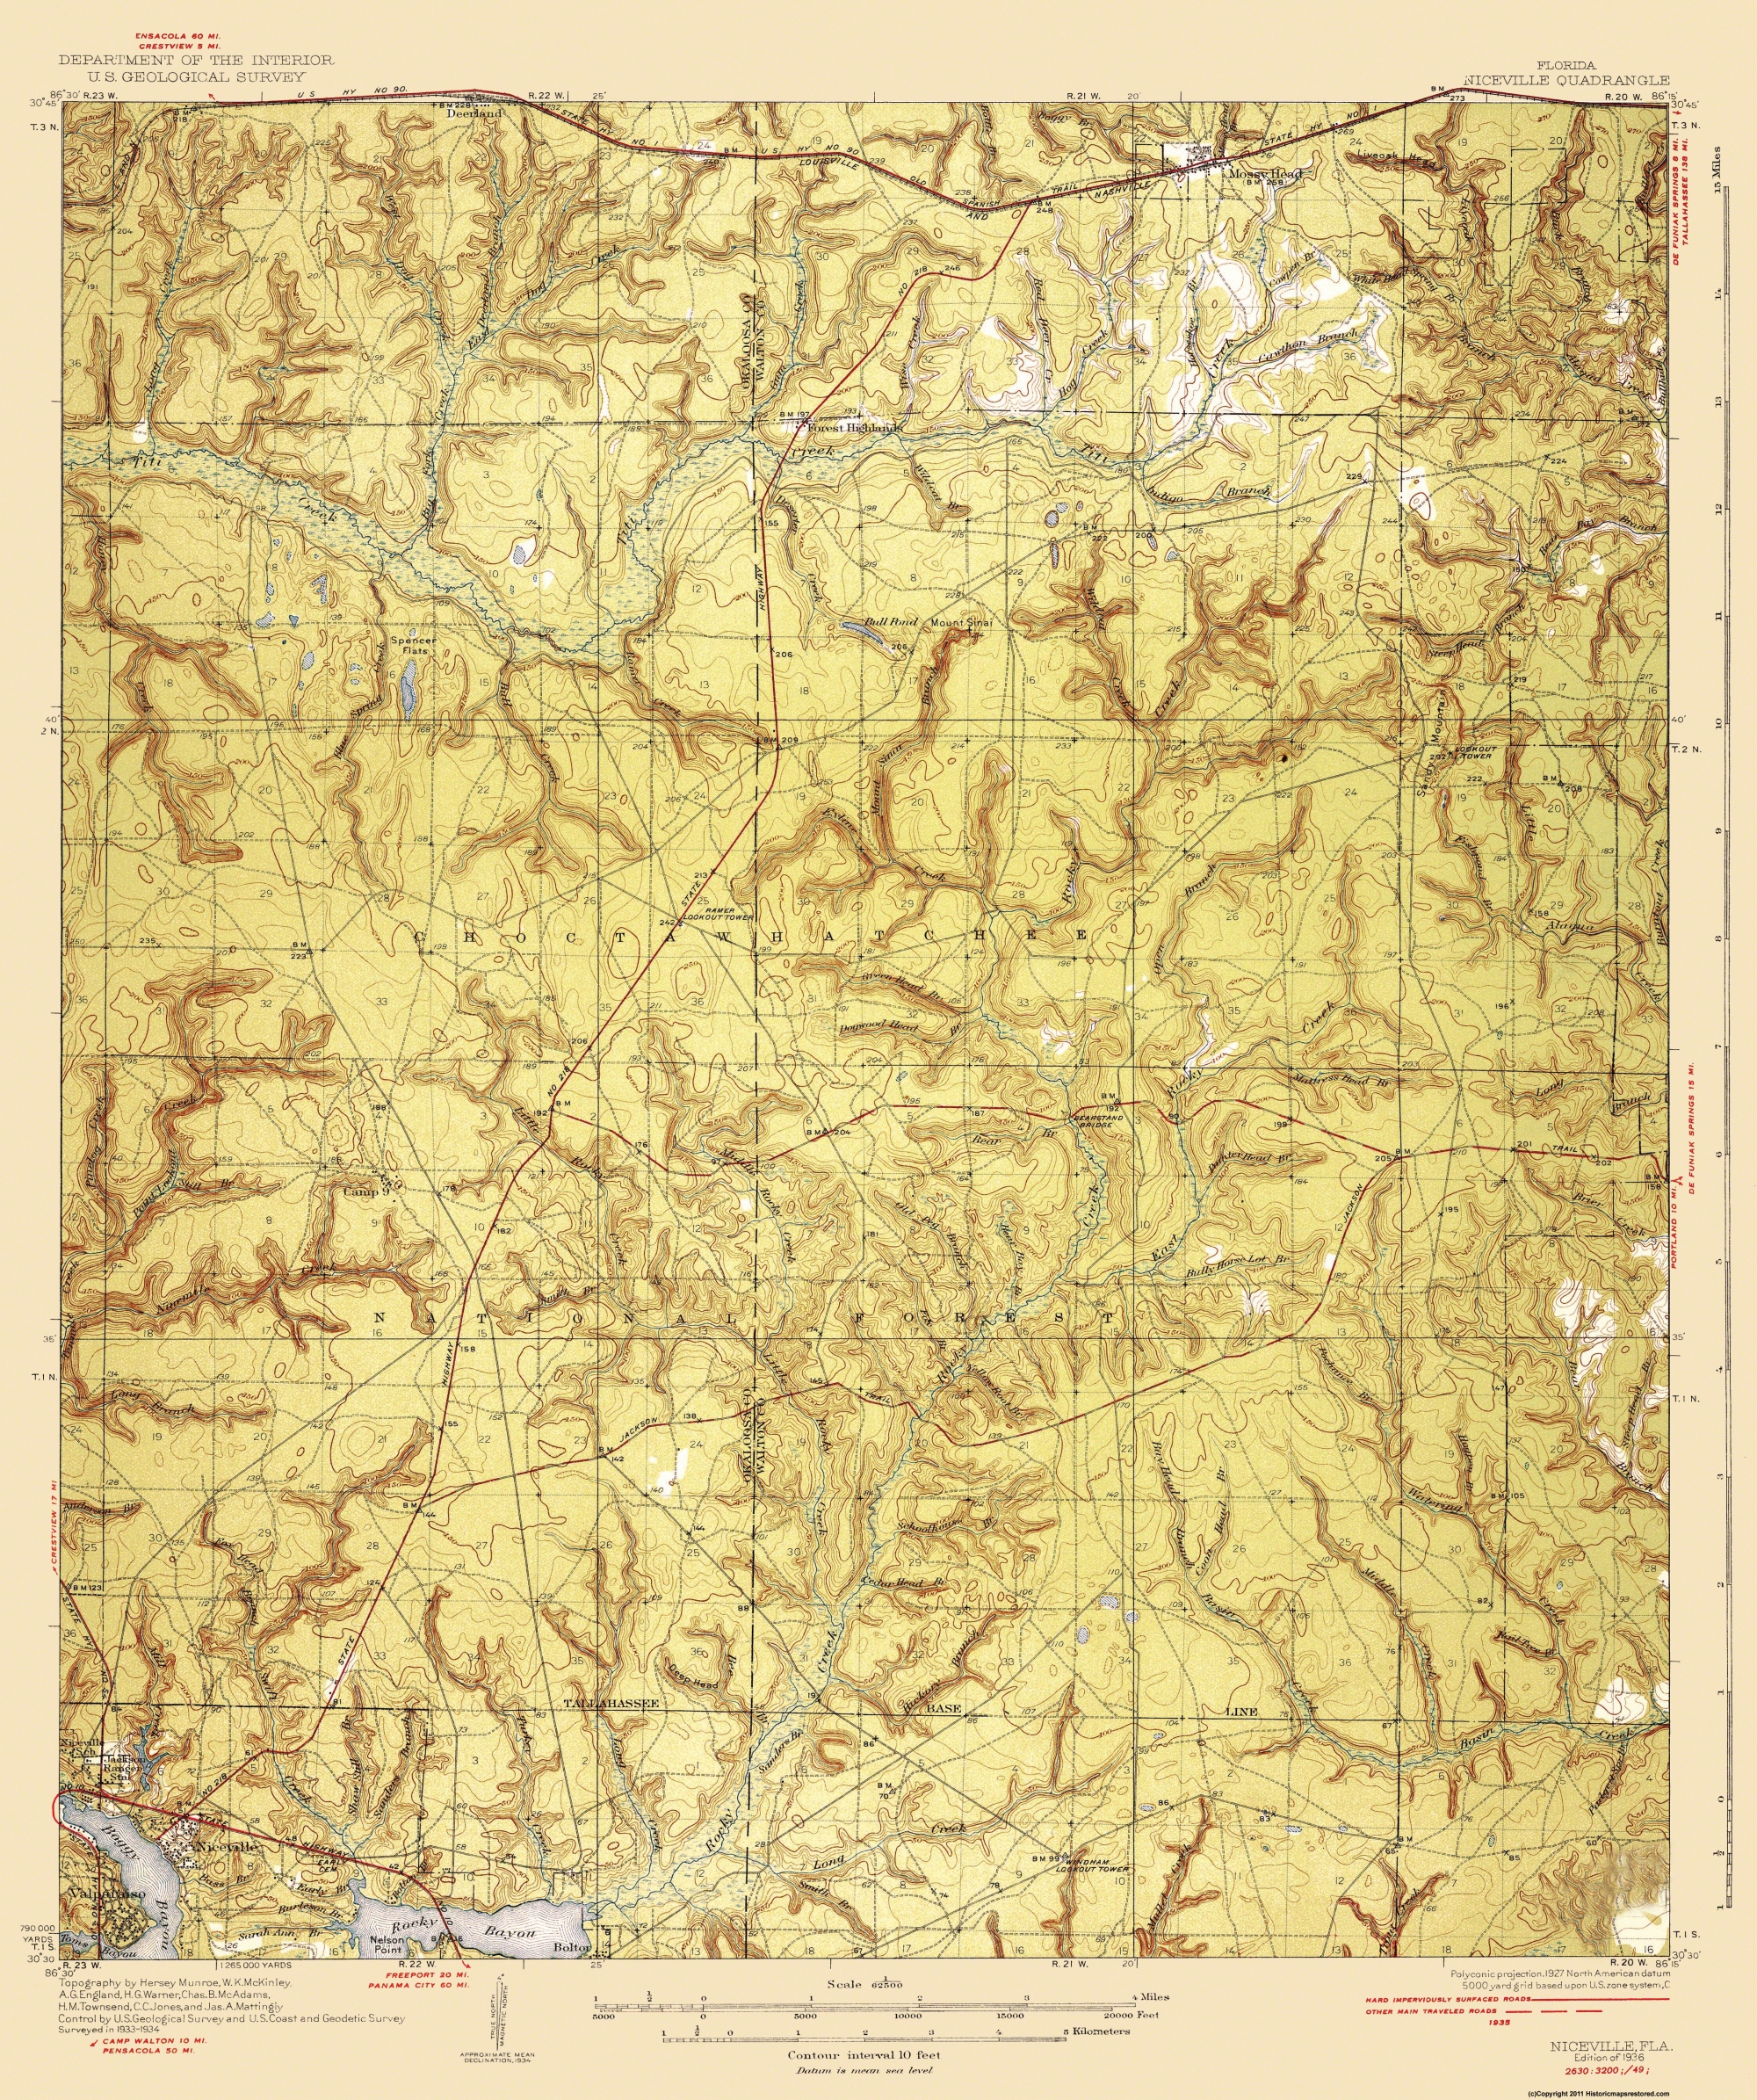 Old Topographical Map - Niceville Florida 1936 - Niceville Florida Map